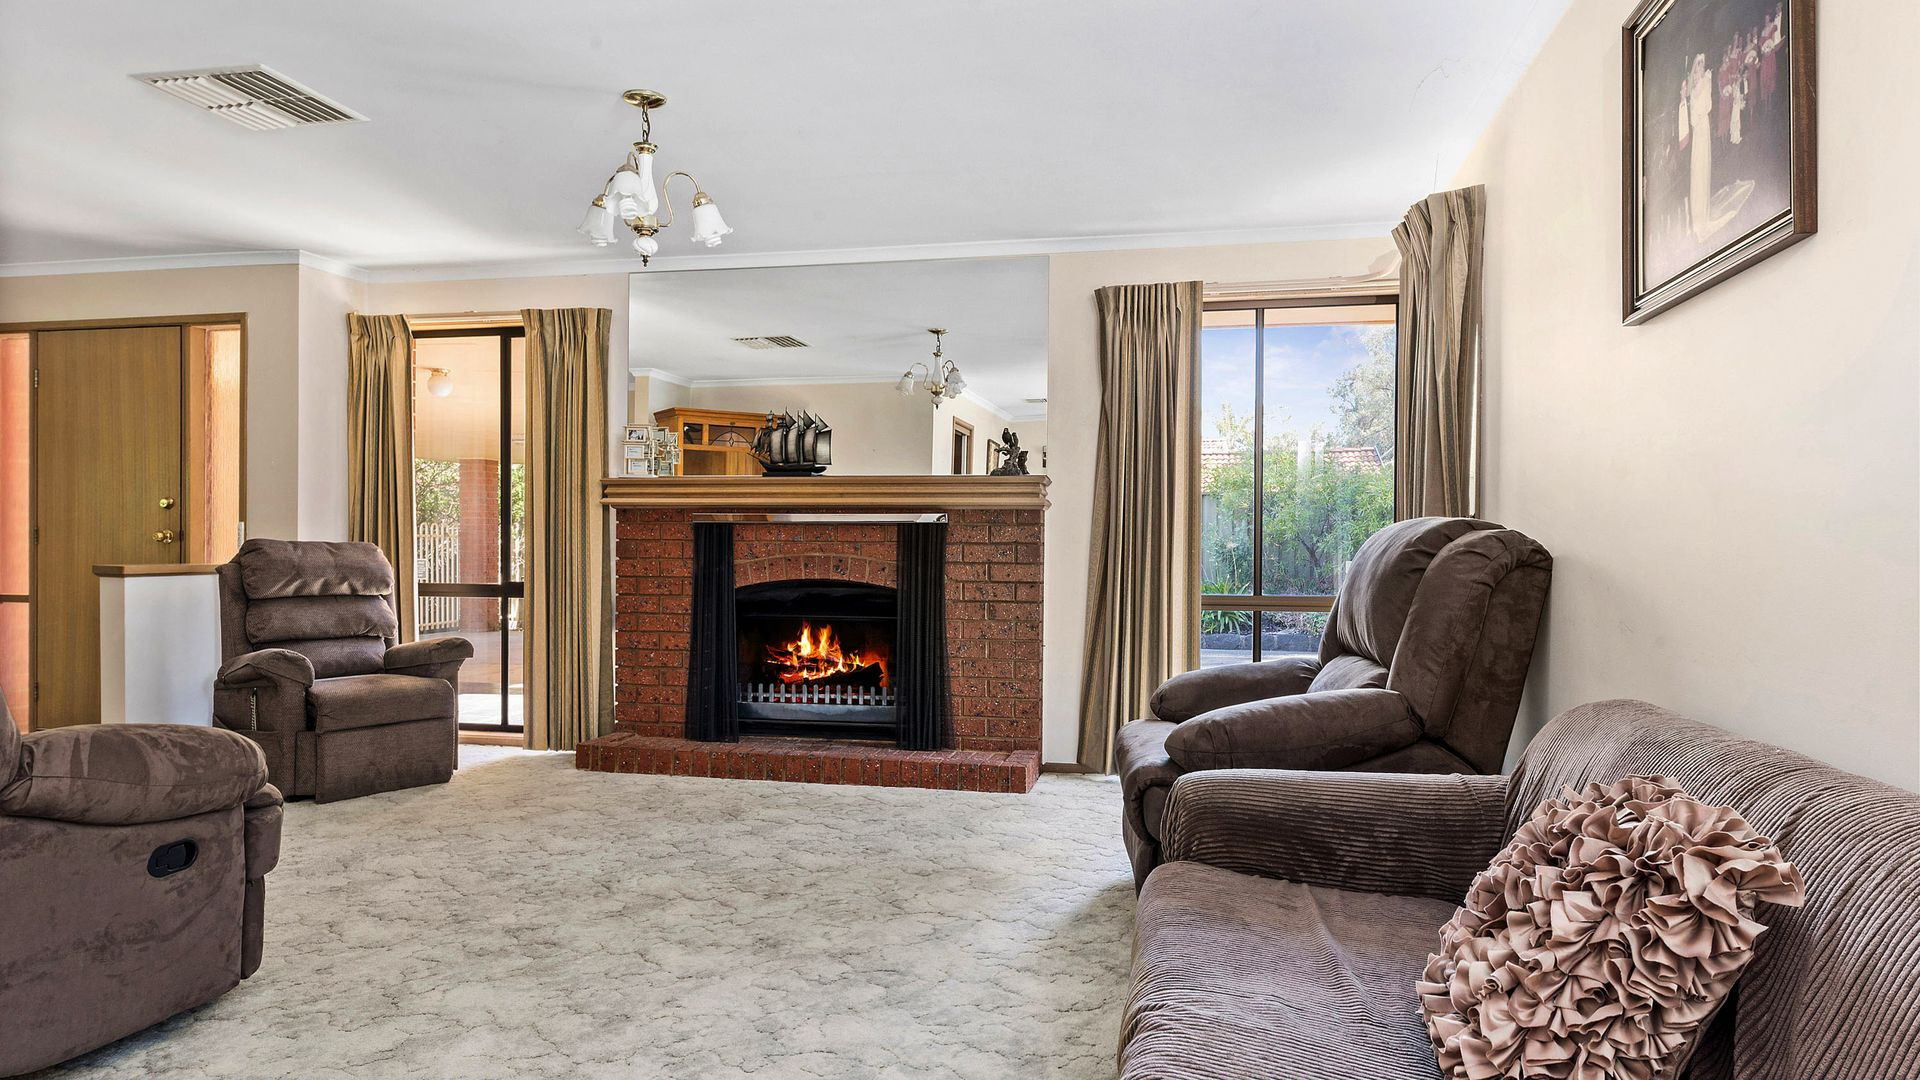 213 North Harley St, Strathdale VIC 3550, Image 1